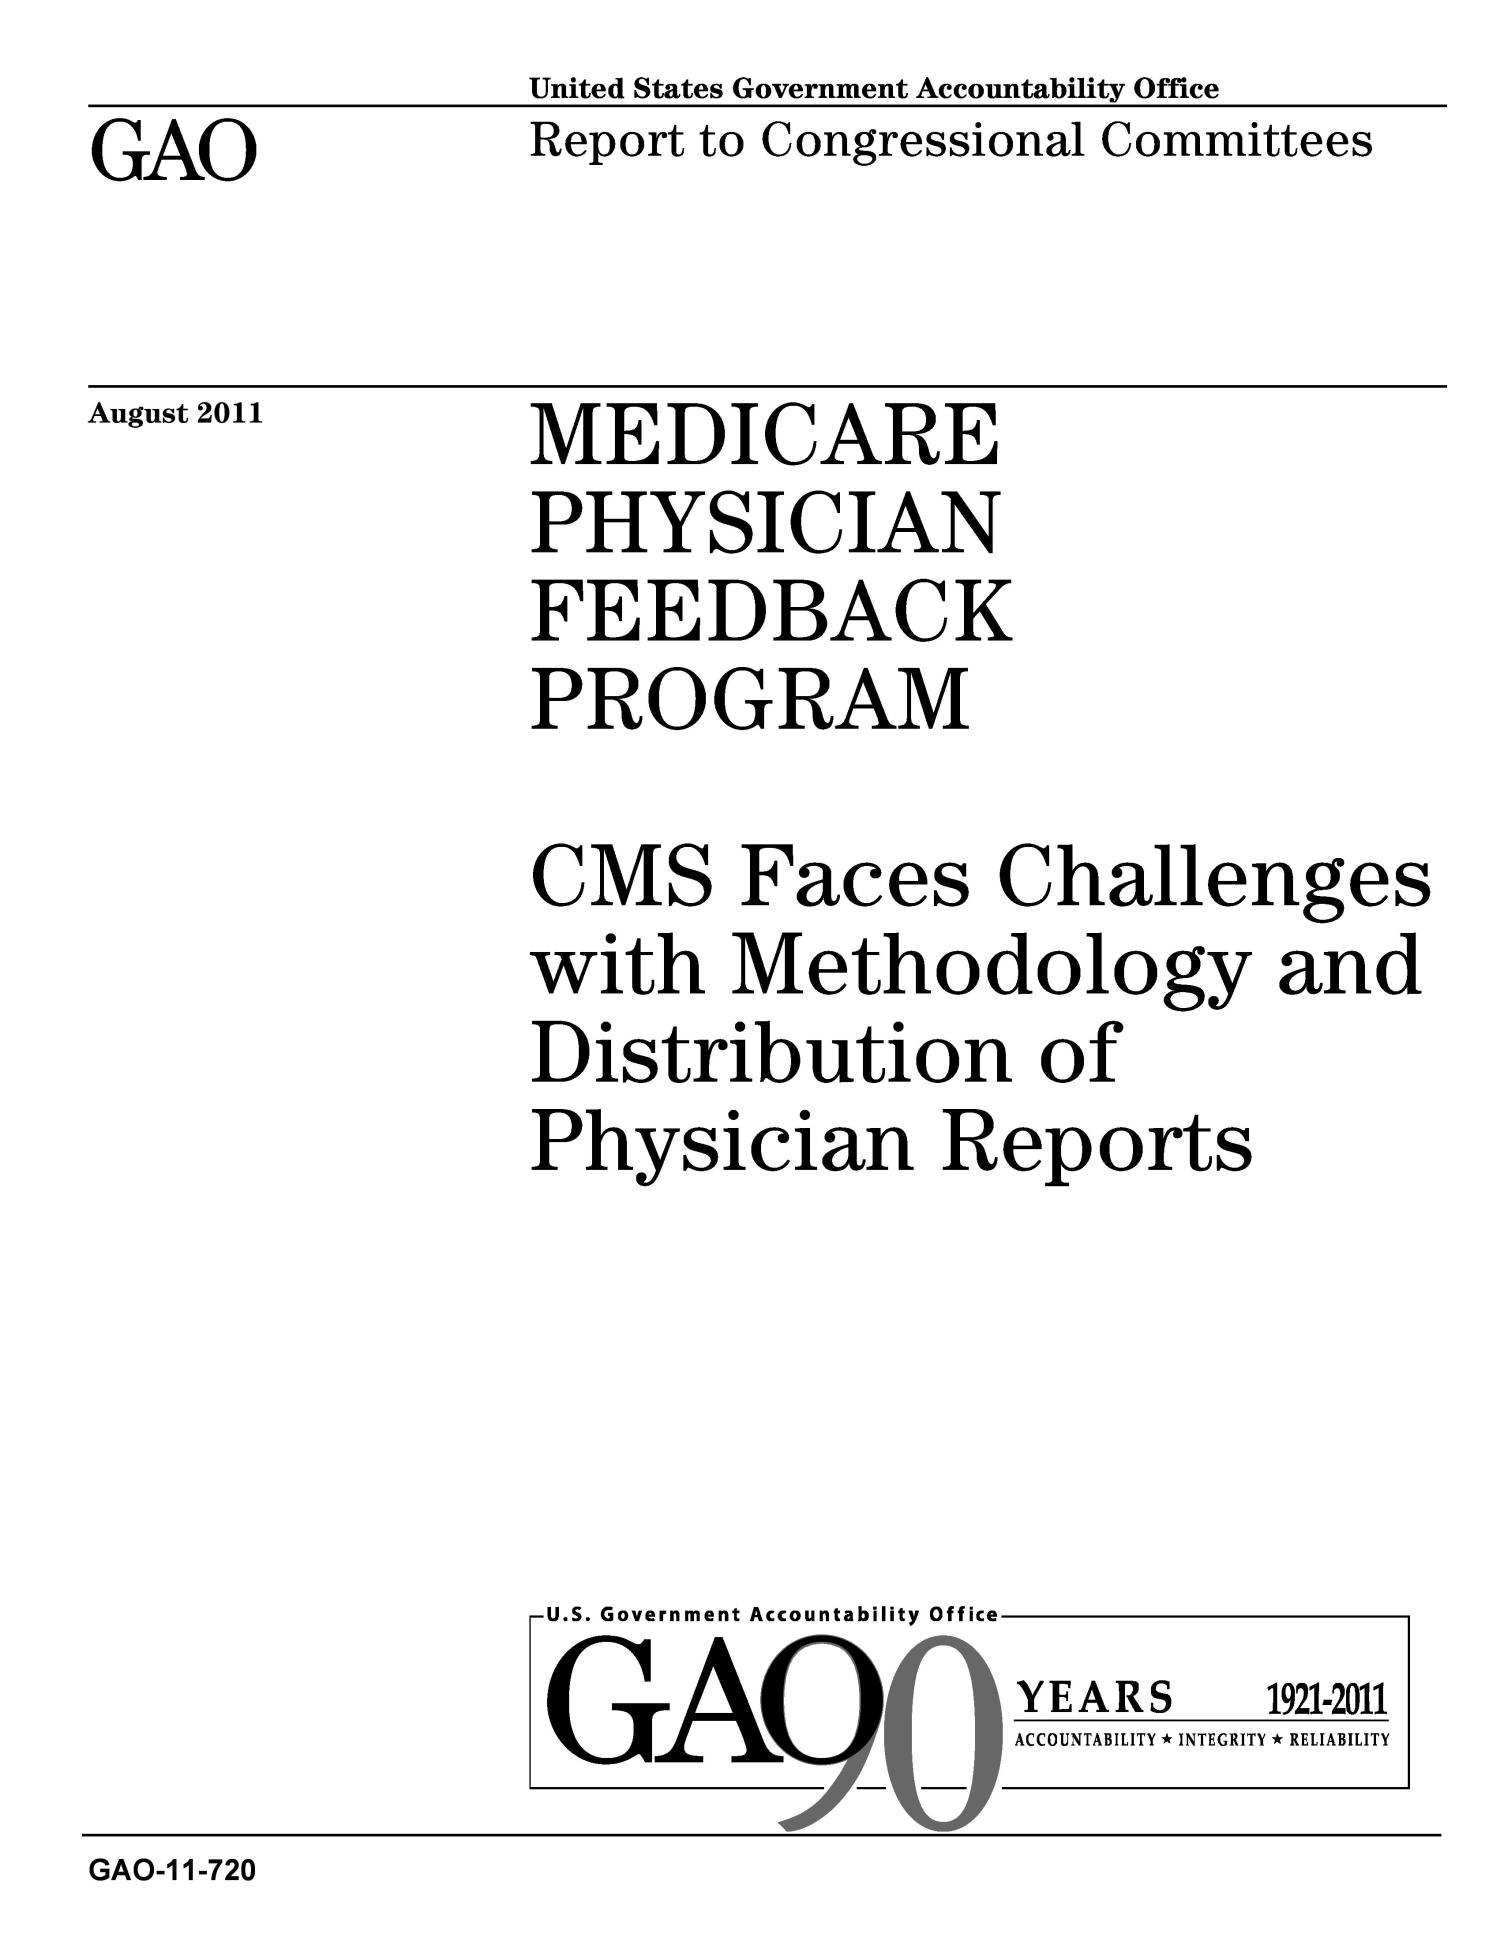 Medicare Physician Feedback Program CMS Faces Challenges with